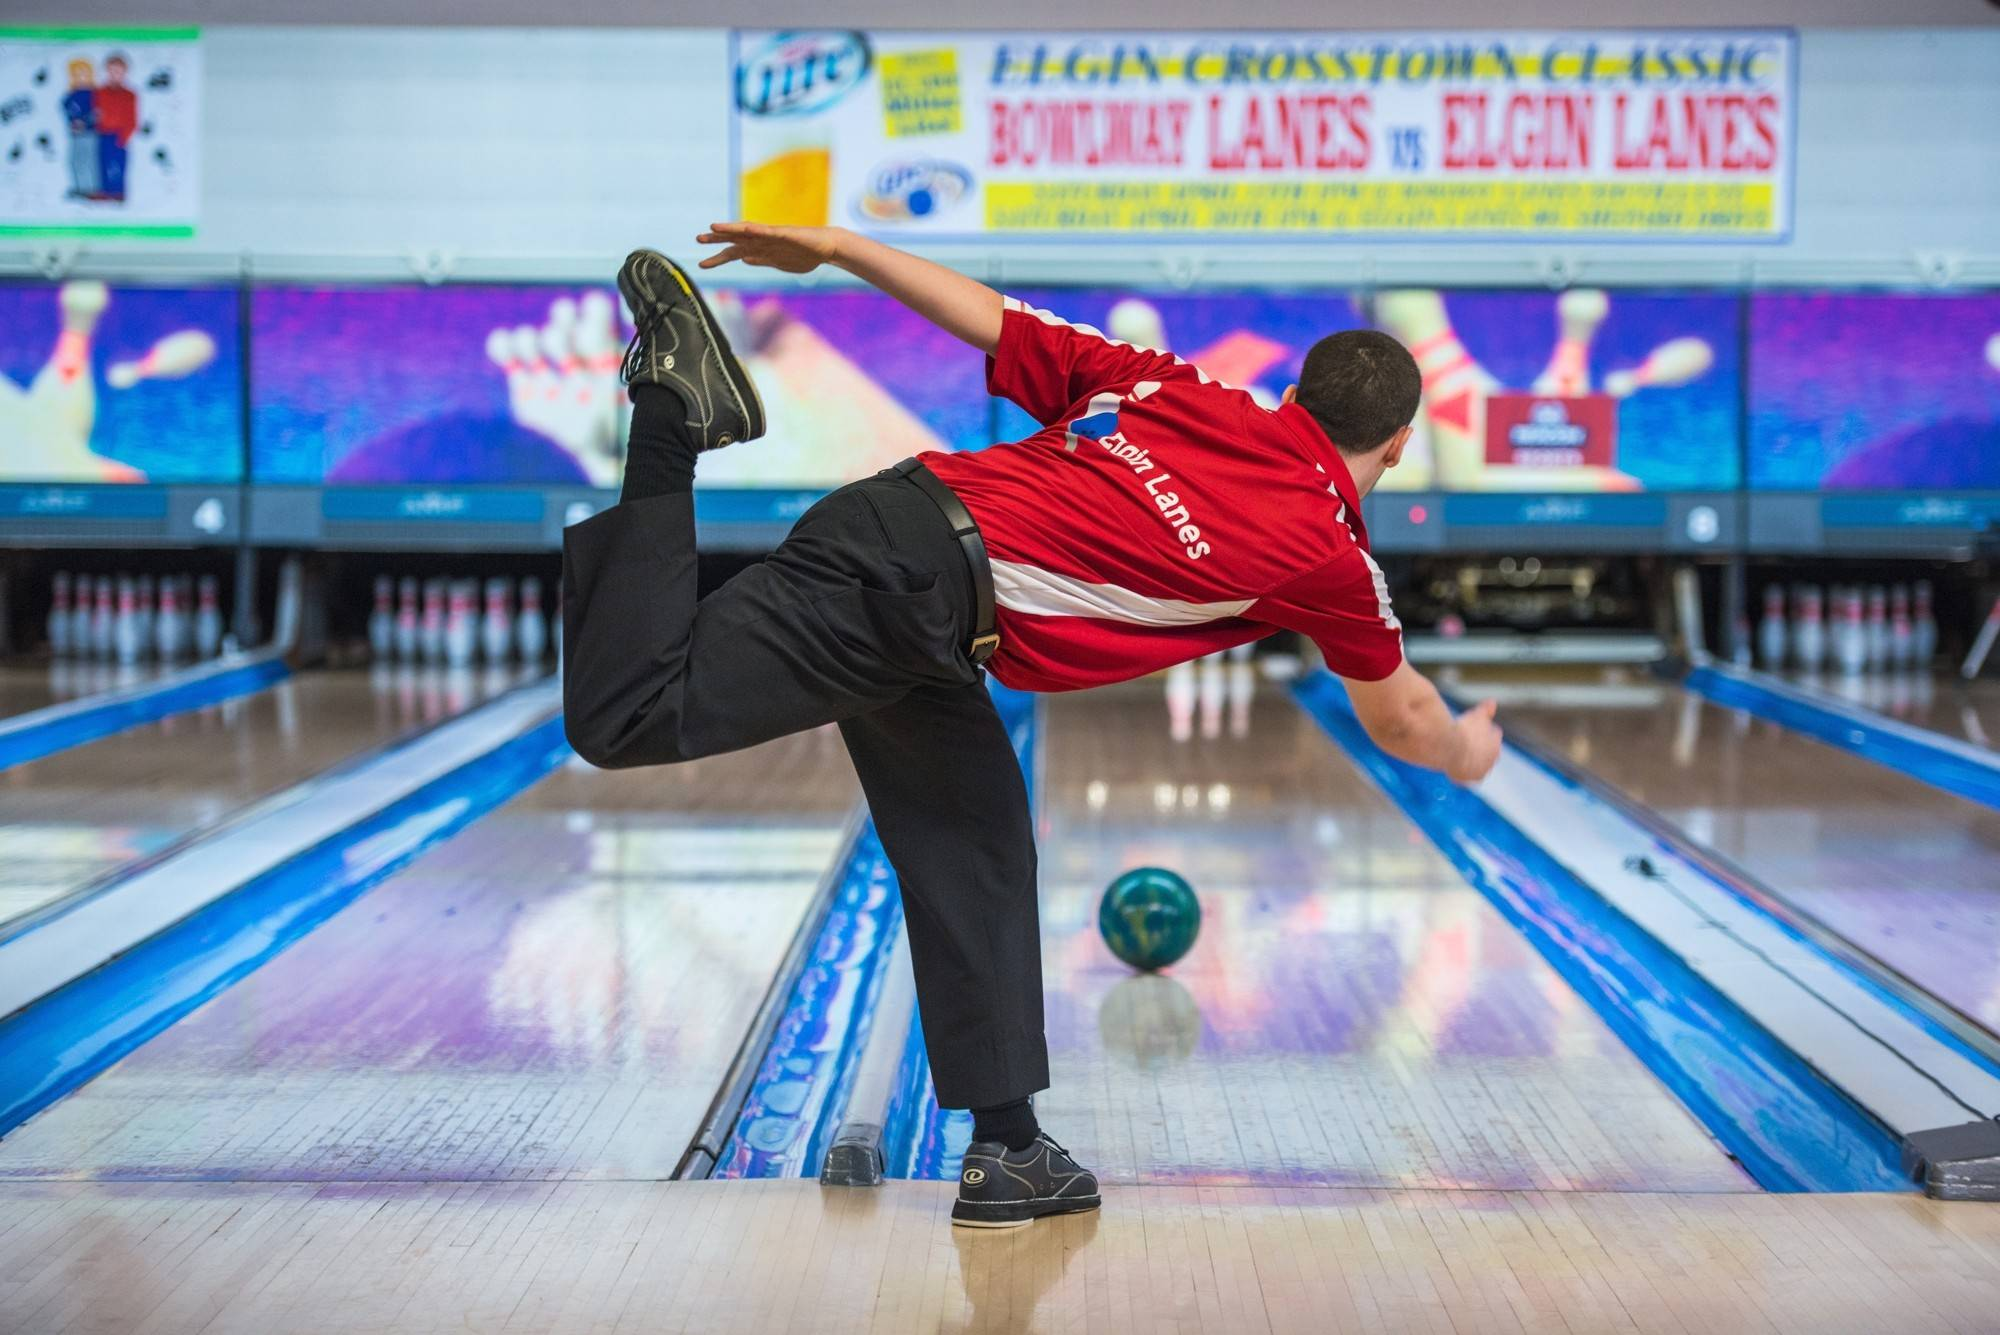 Drew Perly of Elgin displays his classic form during the inaugural Elgin Cross-Town Classic. He will return for the Elgin Lanes team this year.